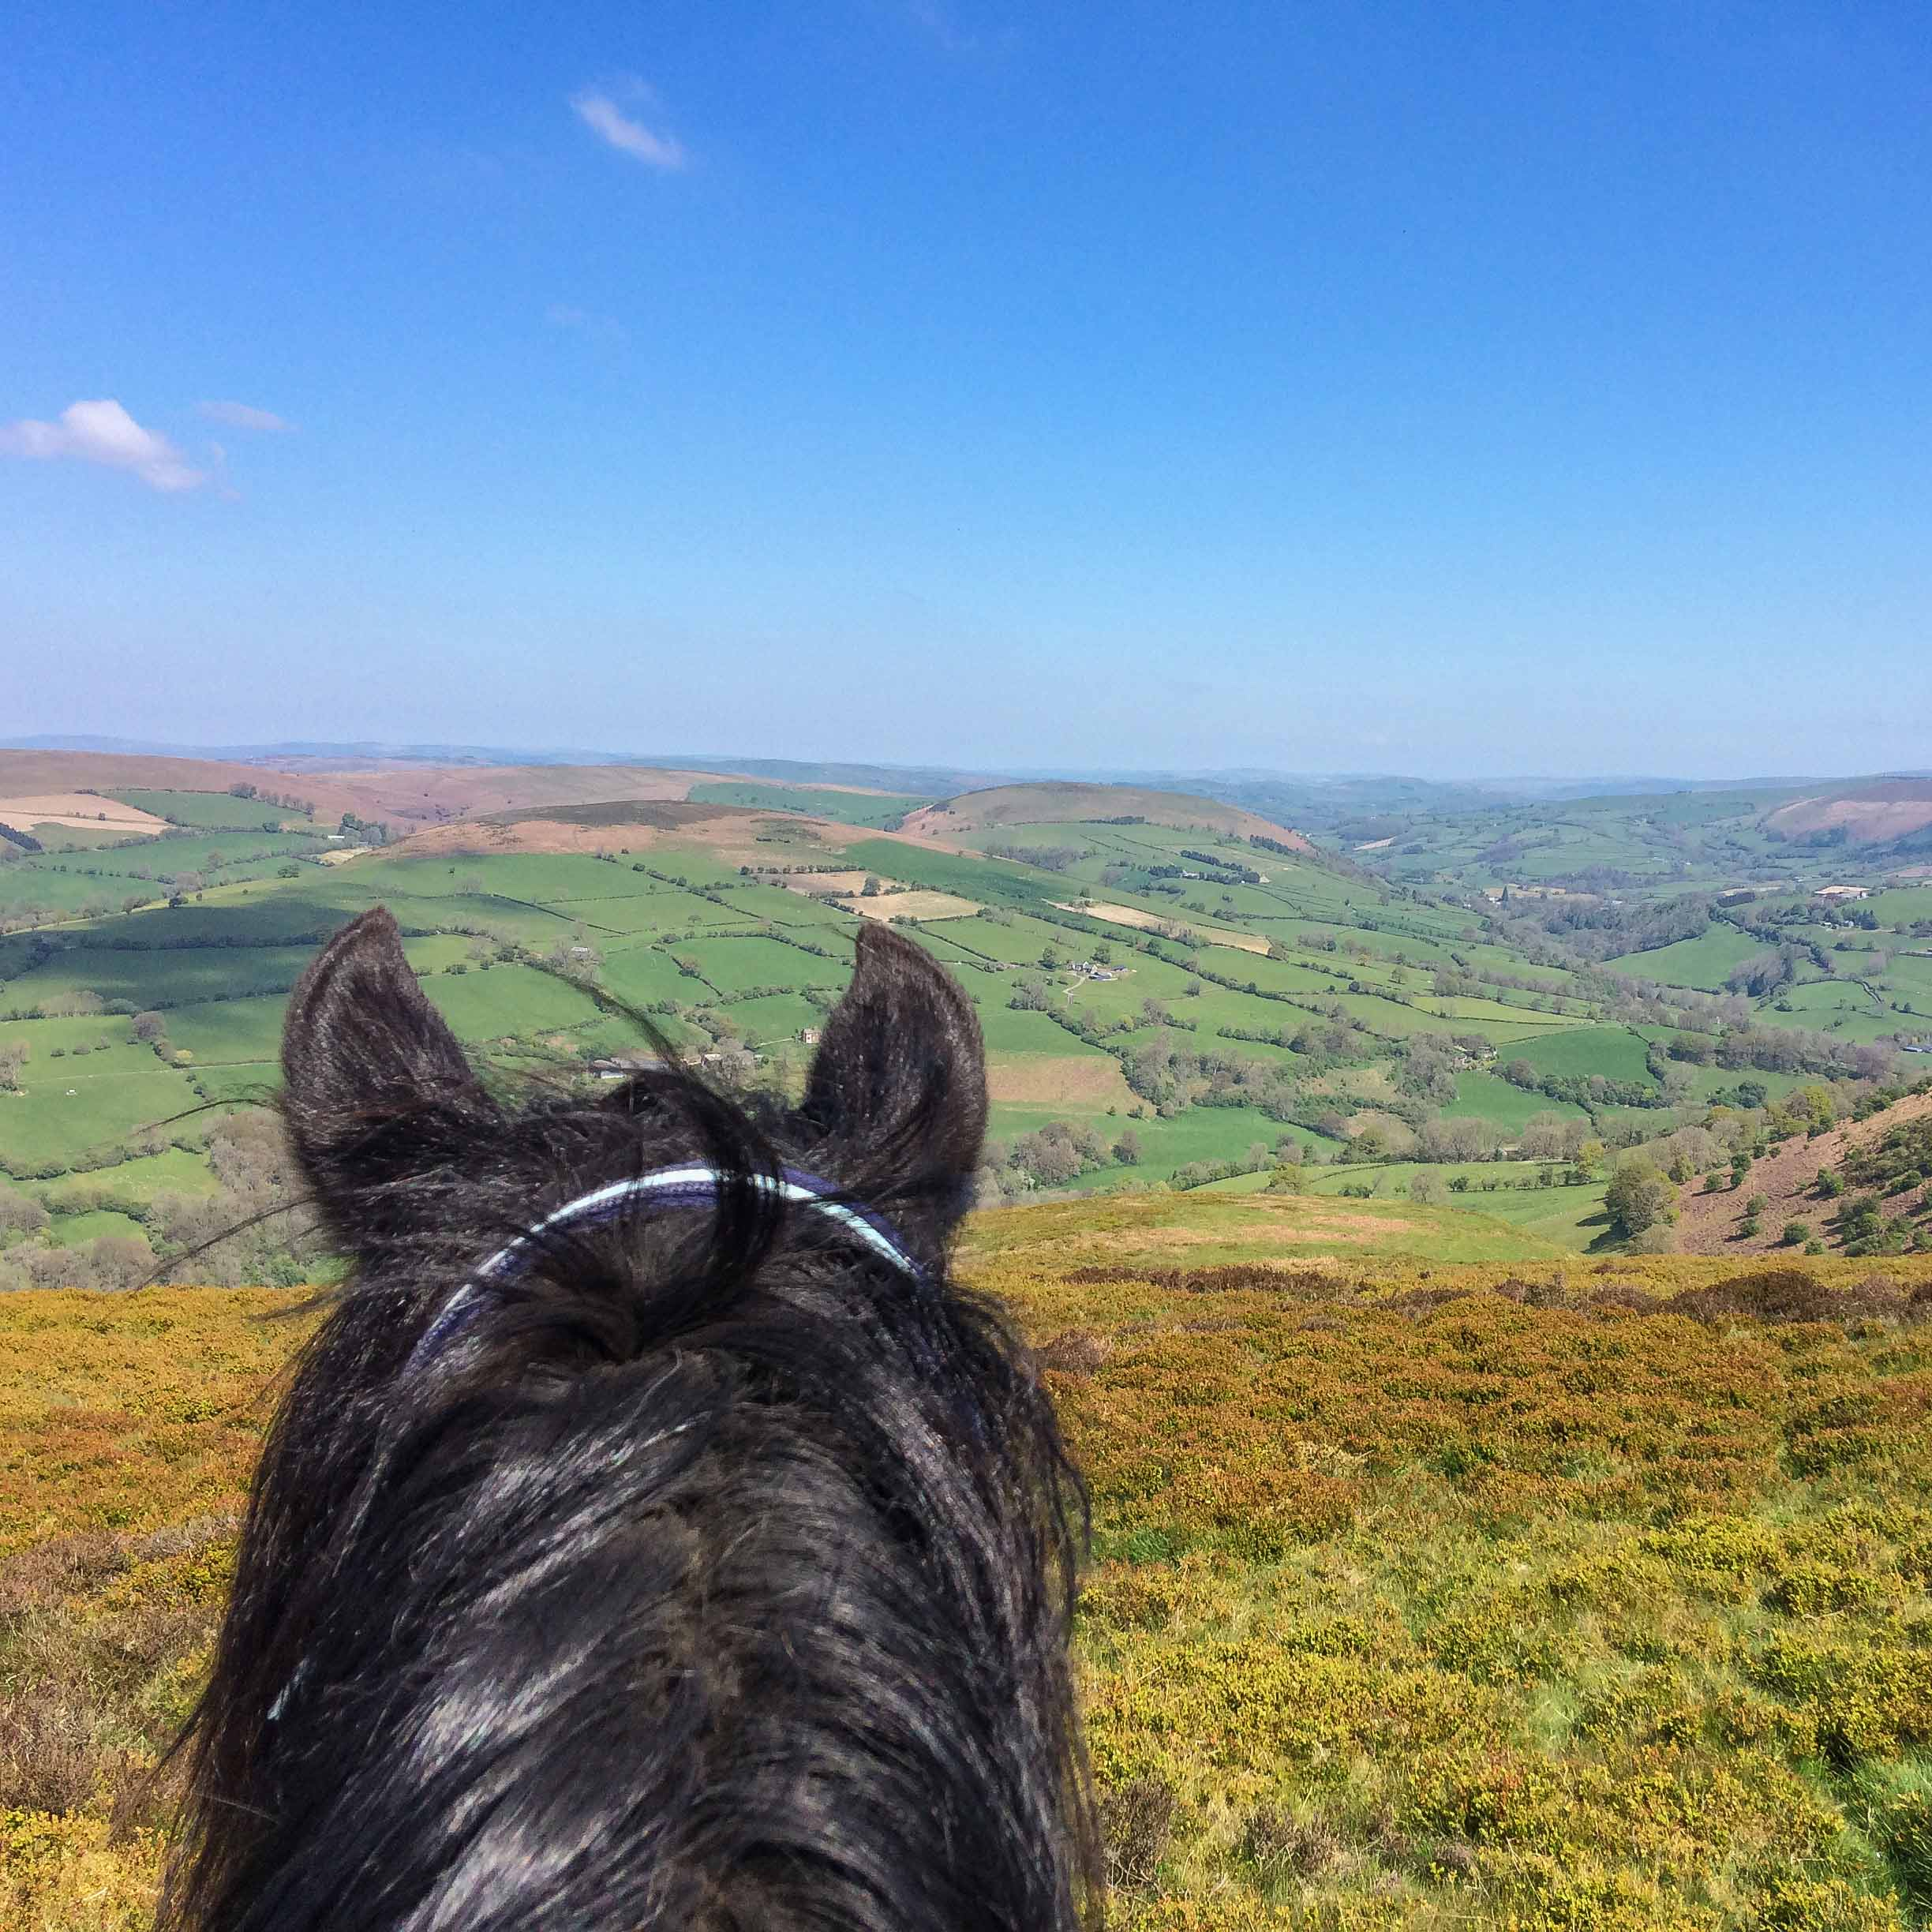 No better way to enjoy these views than through a pair of Freerein ears!